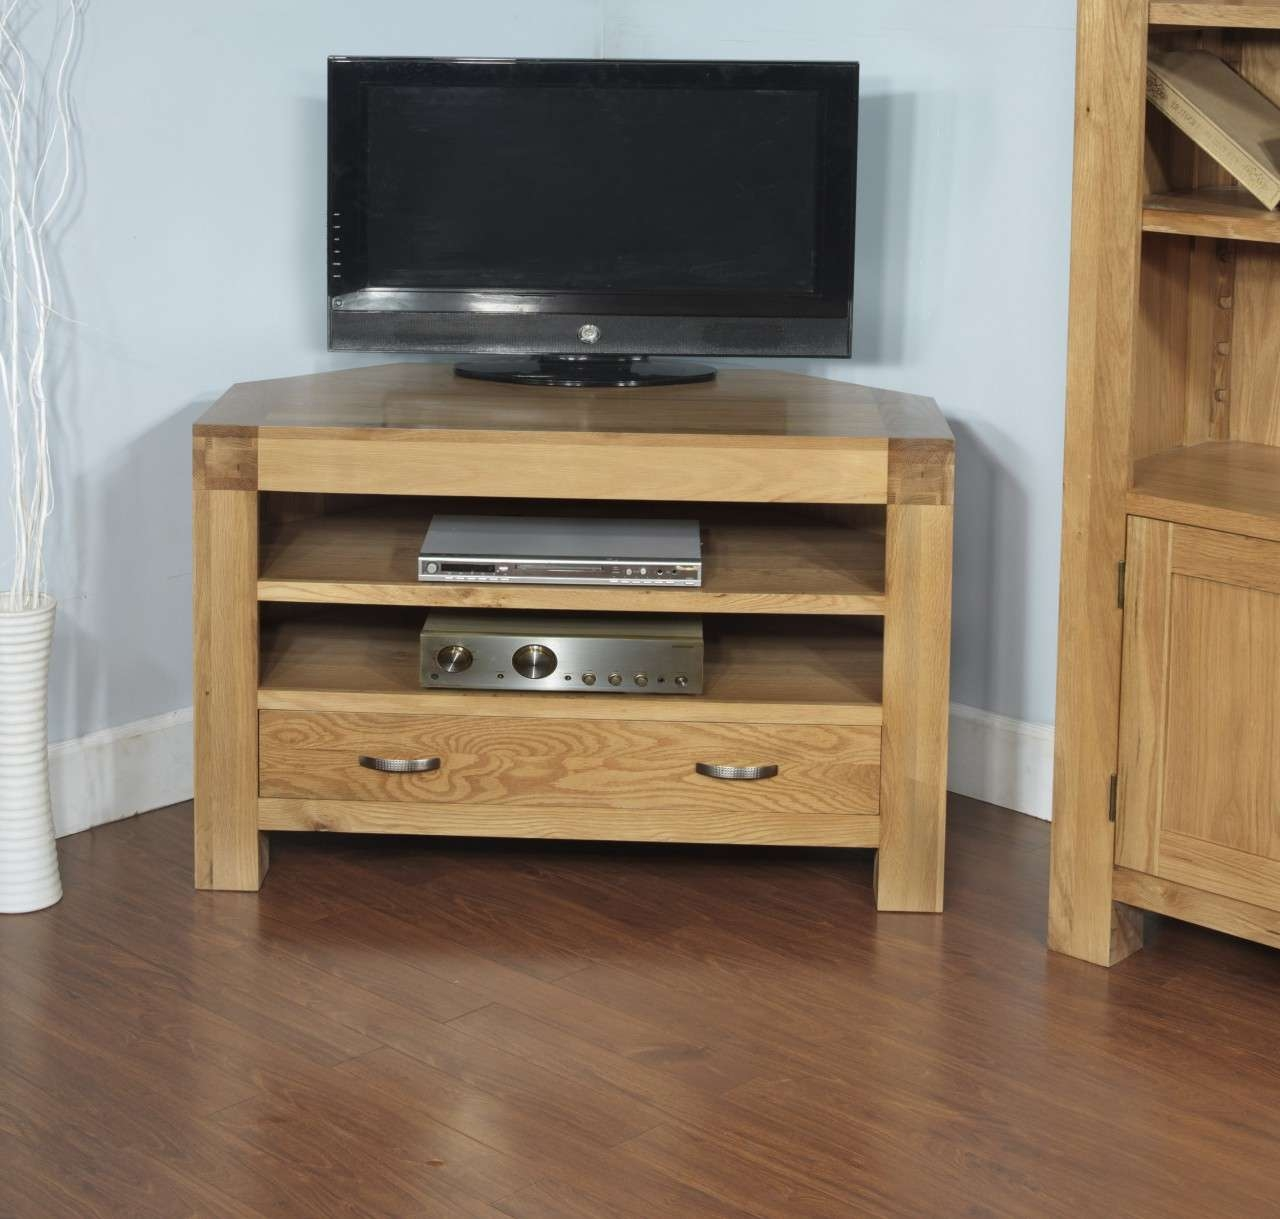 Rivermead Solid Oak Modern Furniture Widescreen Corner Tv Cabinet Inside Real Wood Corner Tv Stands (View 8 of 15)